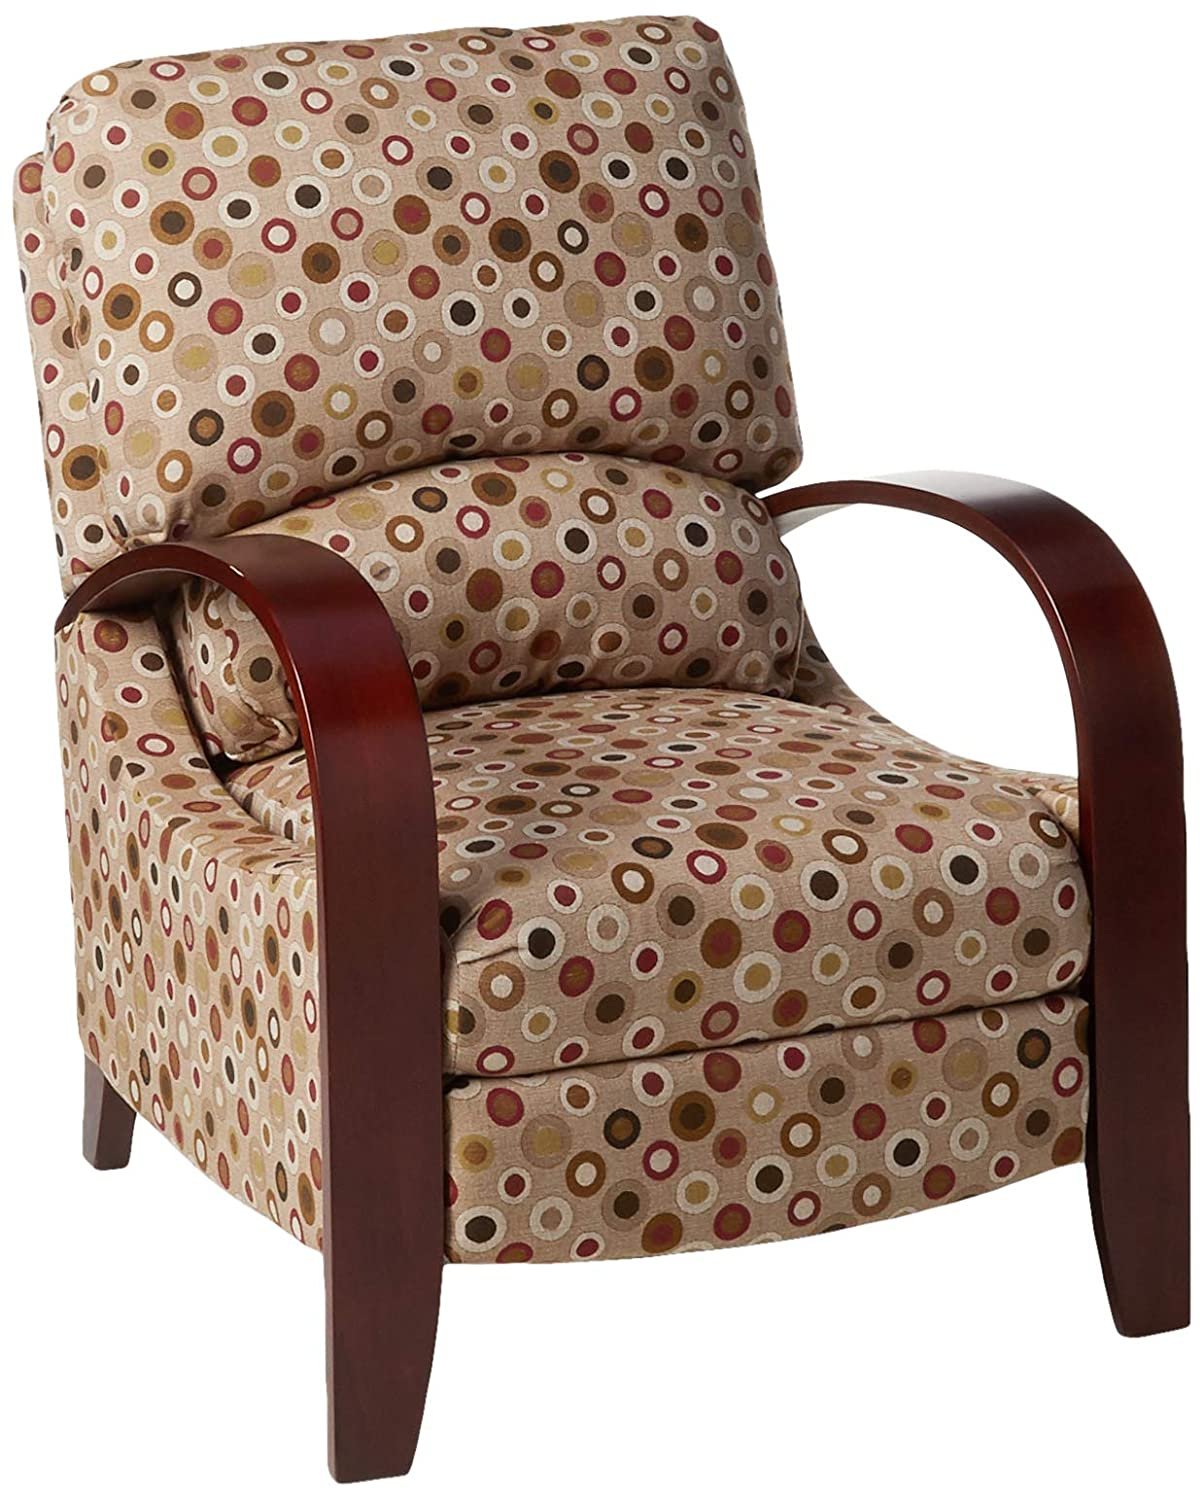 Astonishing Madison Park Archdale Recliner Chair Solid Wood Plywood Deep Seat Accent Armchair Modern Classic Dotted Style Family Room Sofa Furniture See Below Unemploymentrelief Wooden Chair Designs For Living Room Unemploymentrelieforg